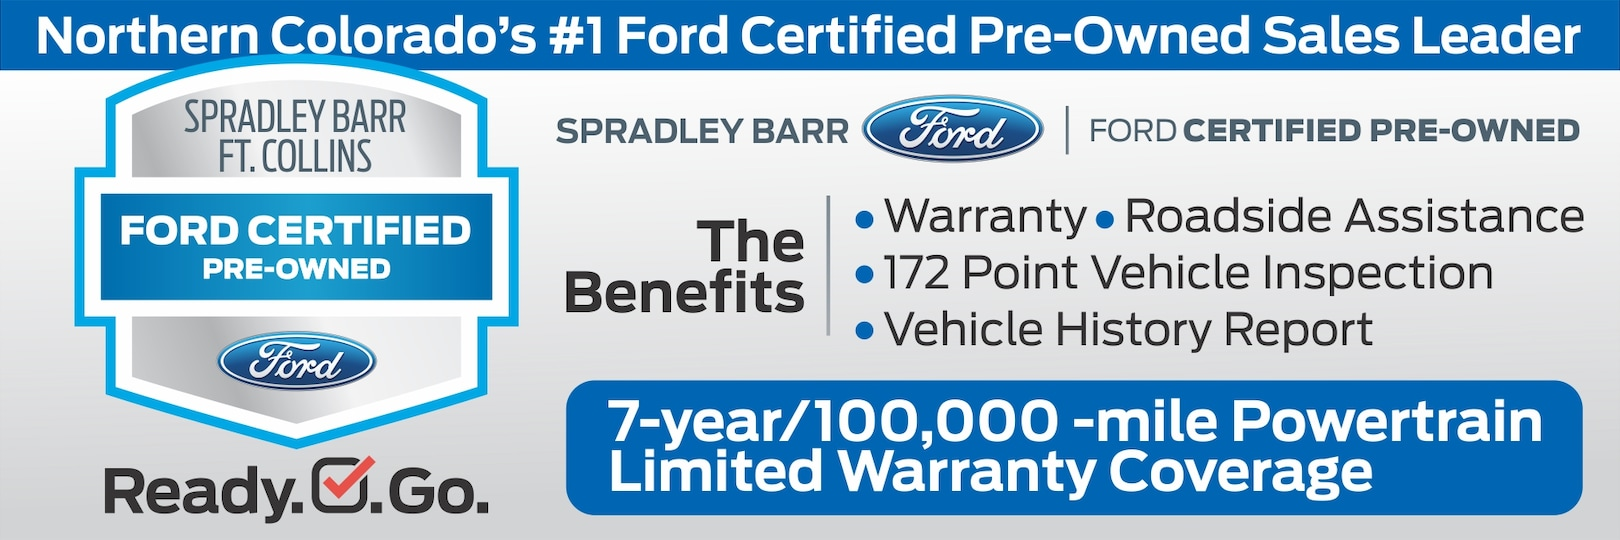 Fort Collins Spradley Barr Ford Ft New Used Cars 2007 Fusion Wiring Diagram As Well Focus Engine Partment Previous Next